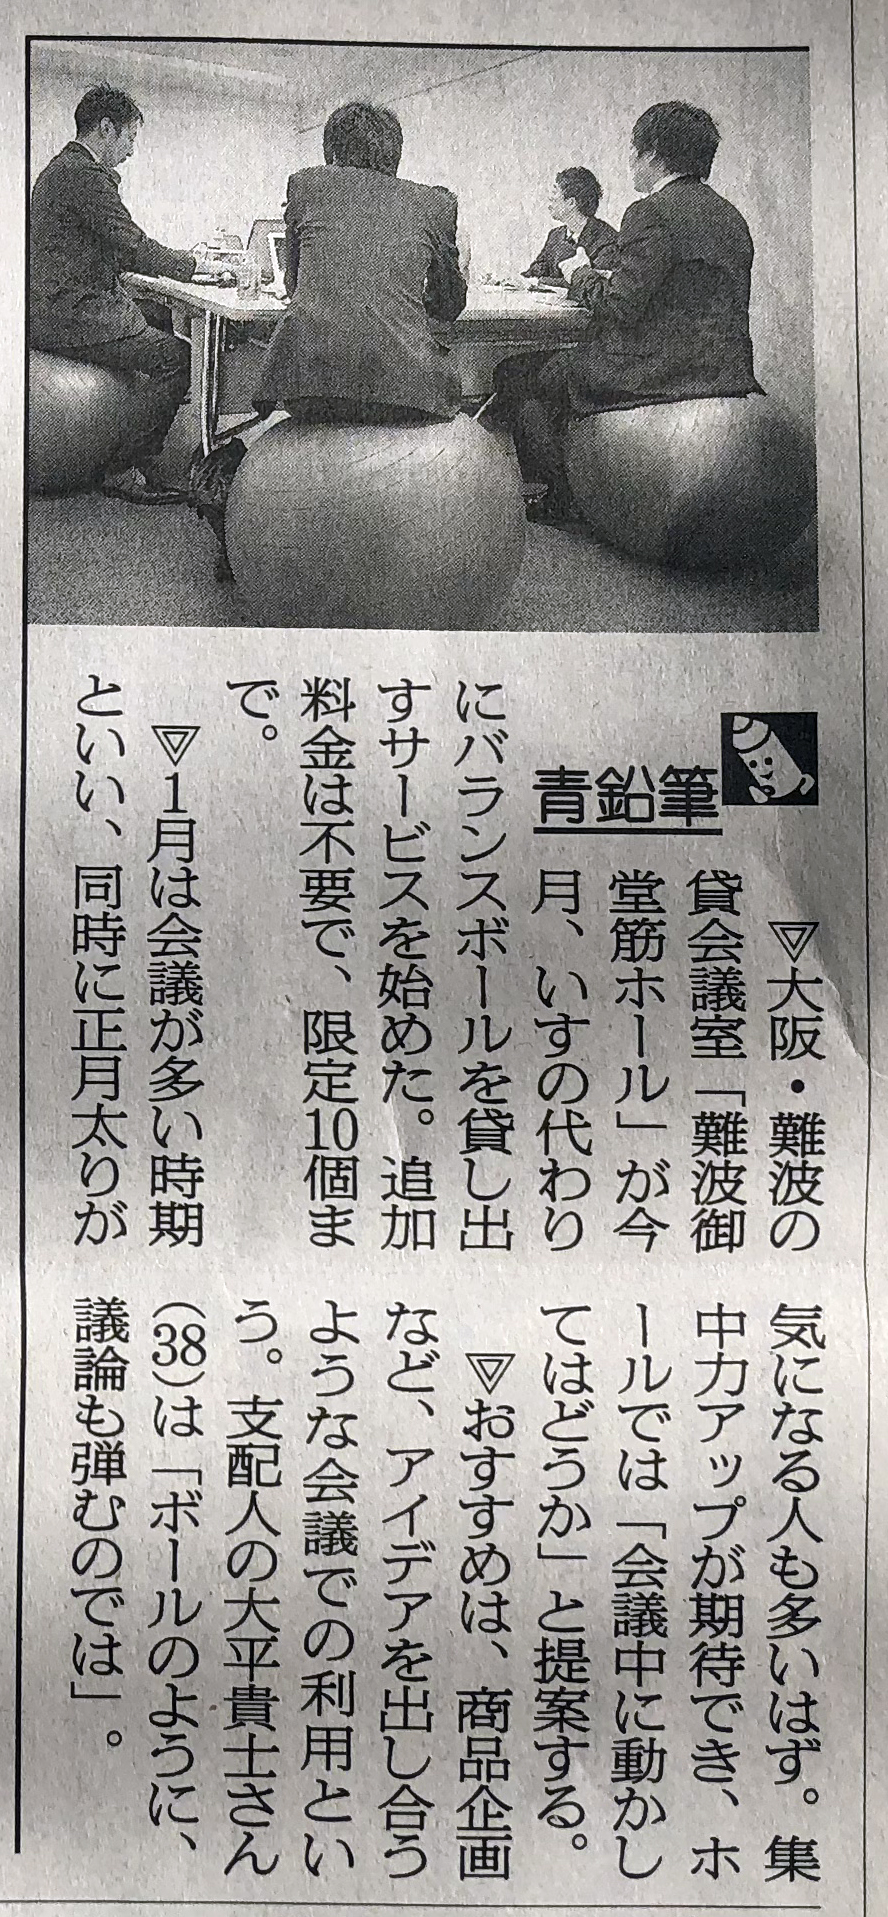 20180120_nmh_朝日新聞_バランスボール会議